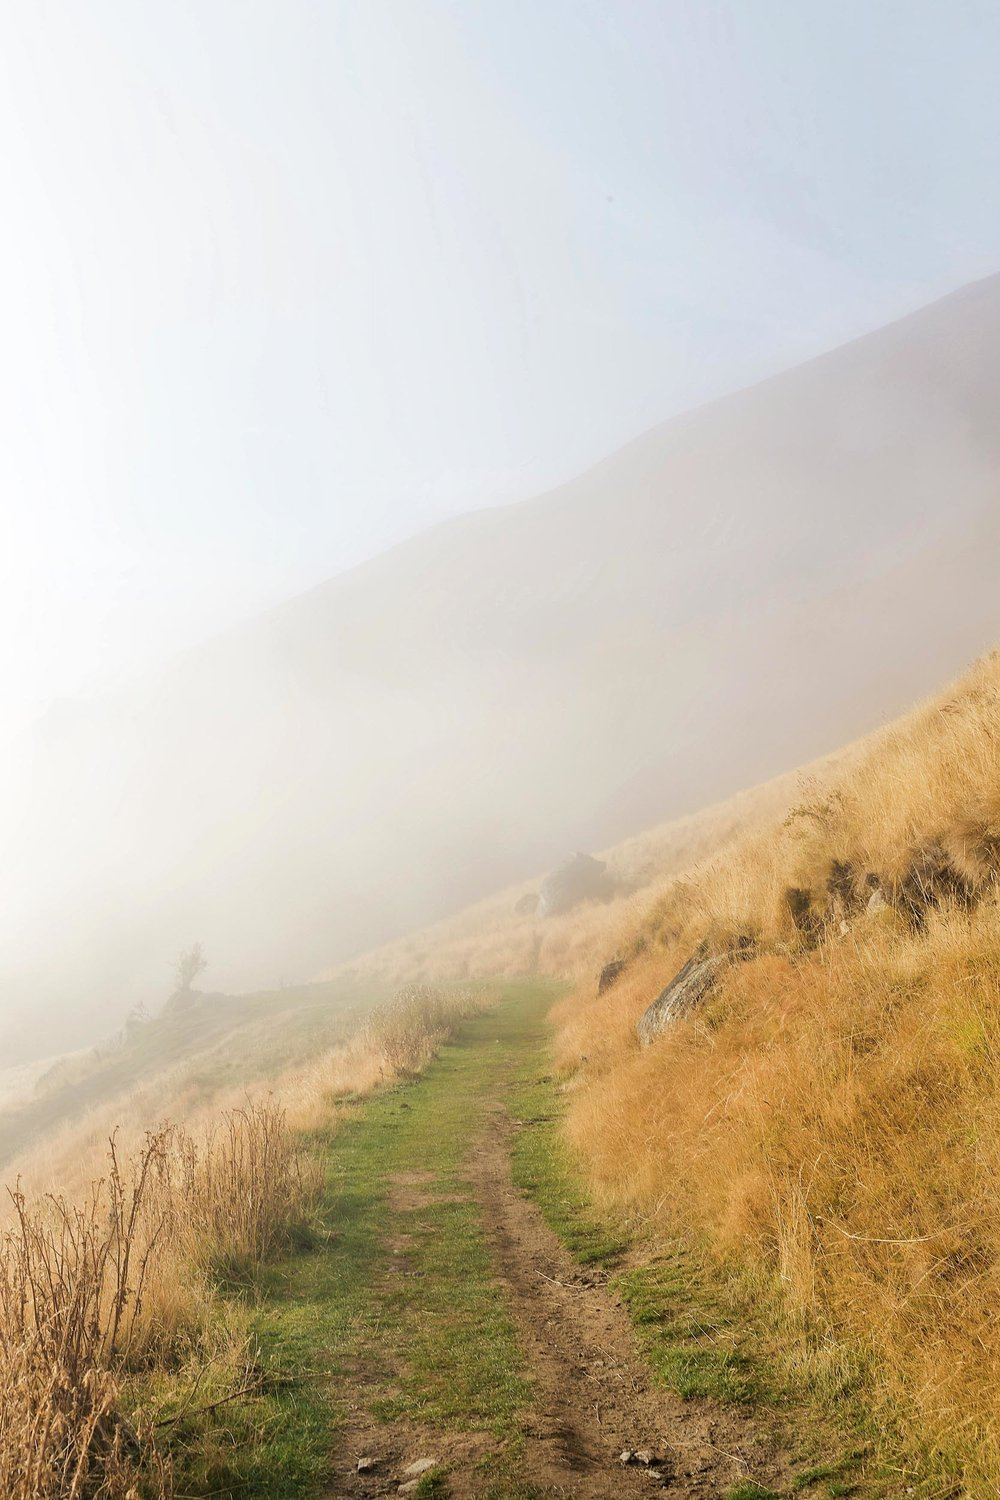 Foggy views during the hike to Roys Peak in New Zealand